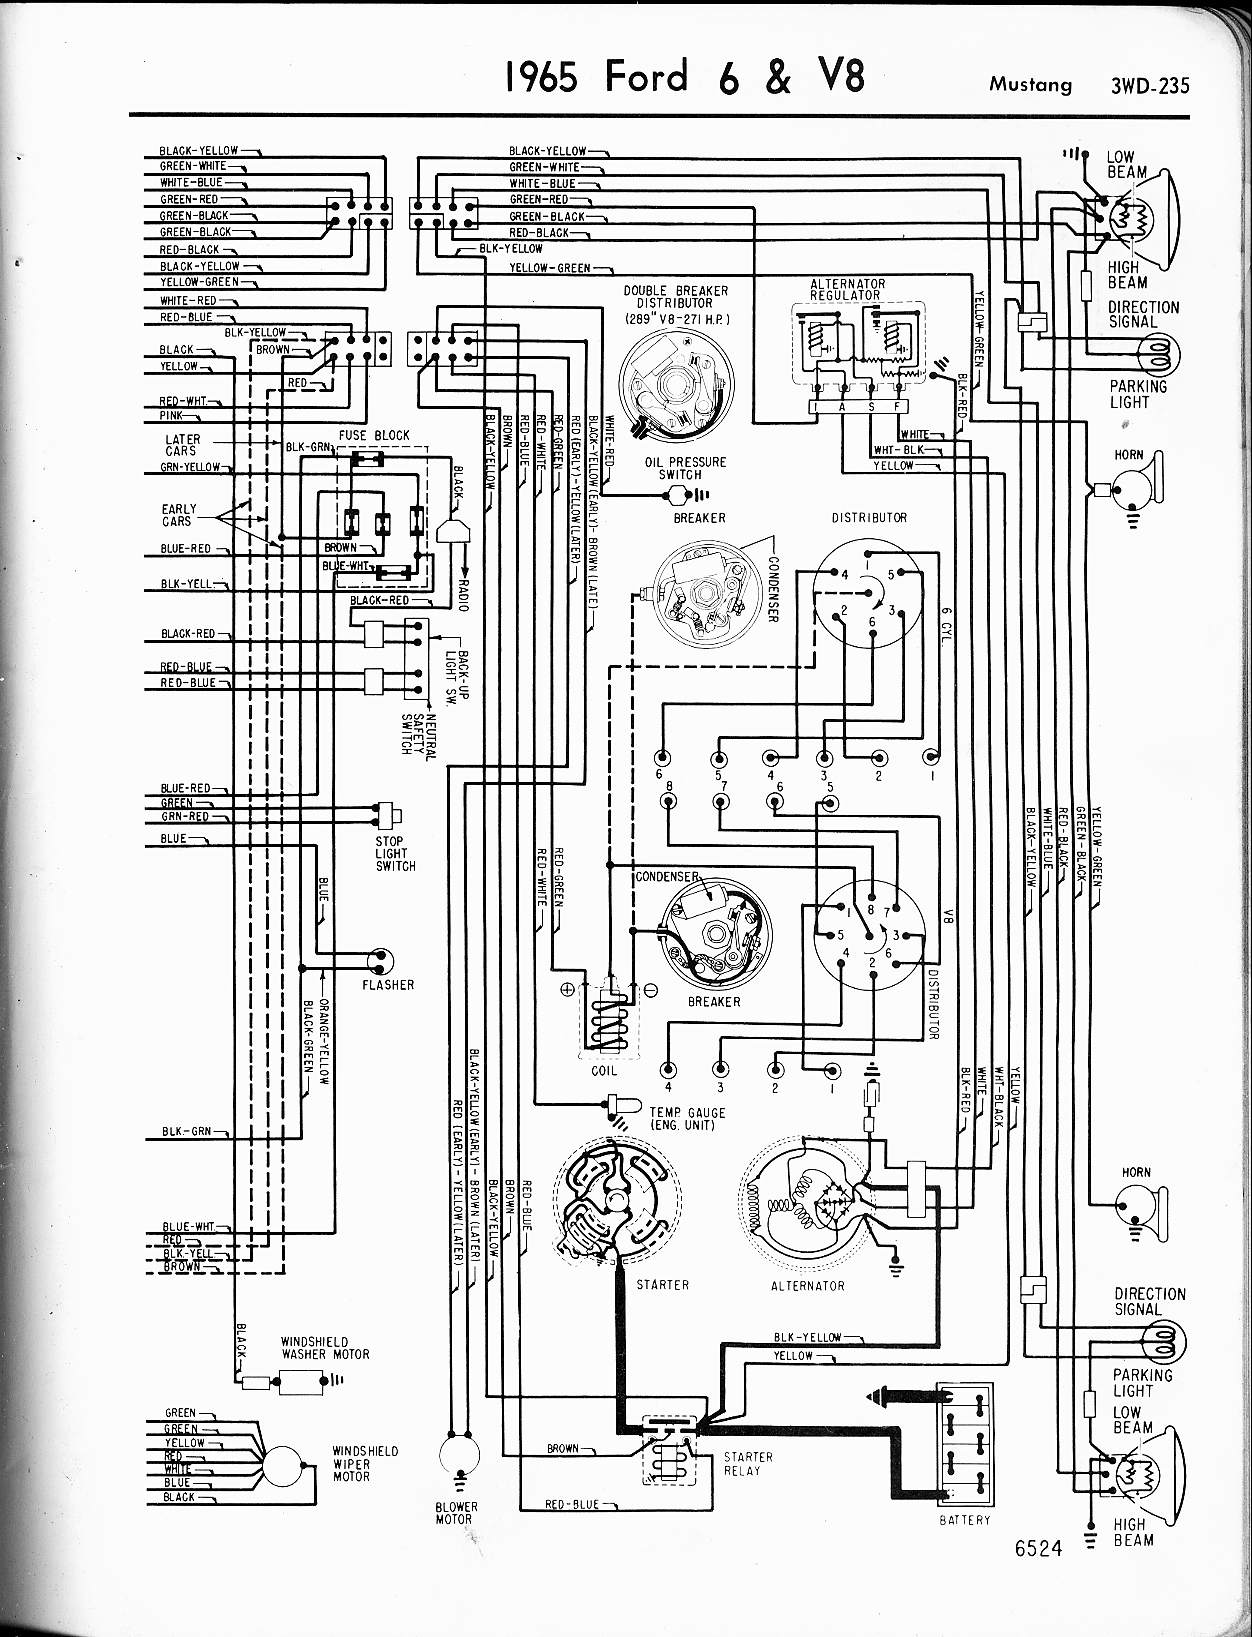 1969 Mustang Wiring Schematic Auto Electrical Diagram Vw I Have A Ford The Instrument Panel Lights Up